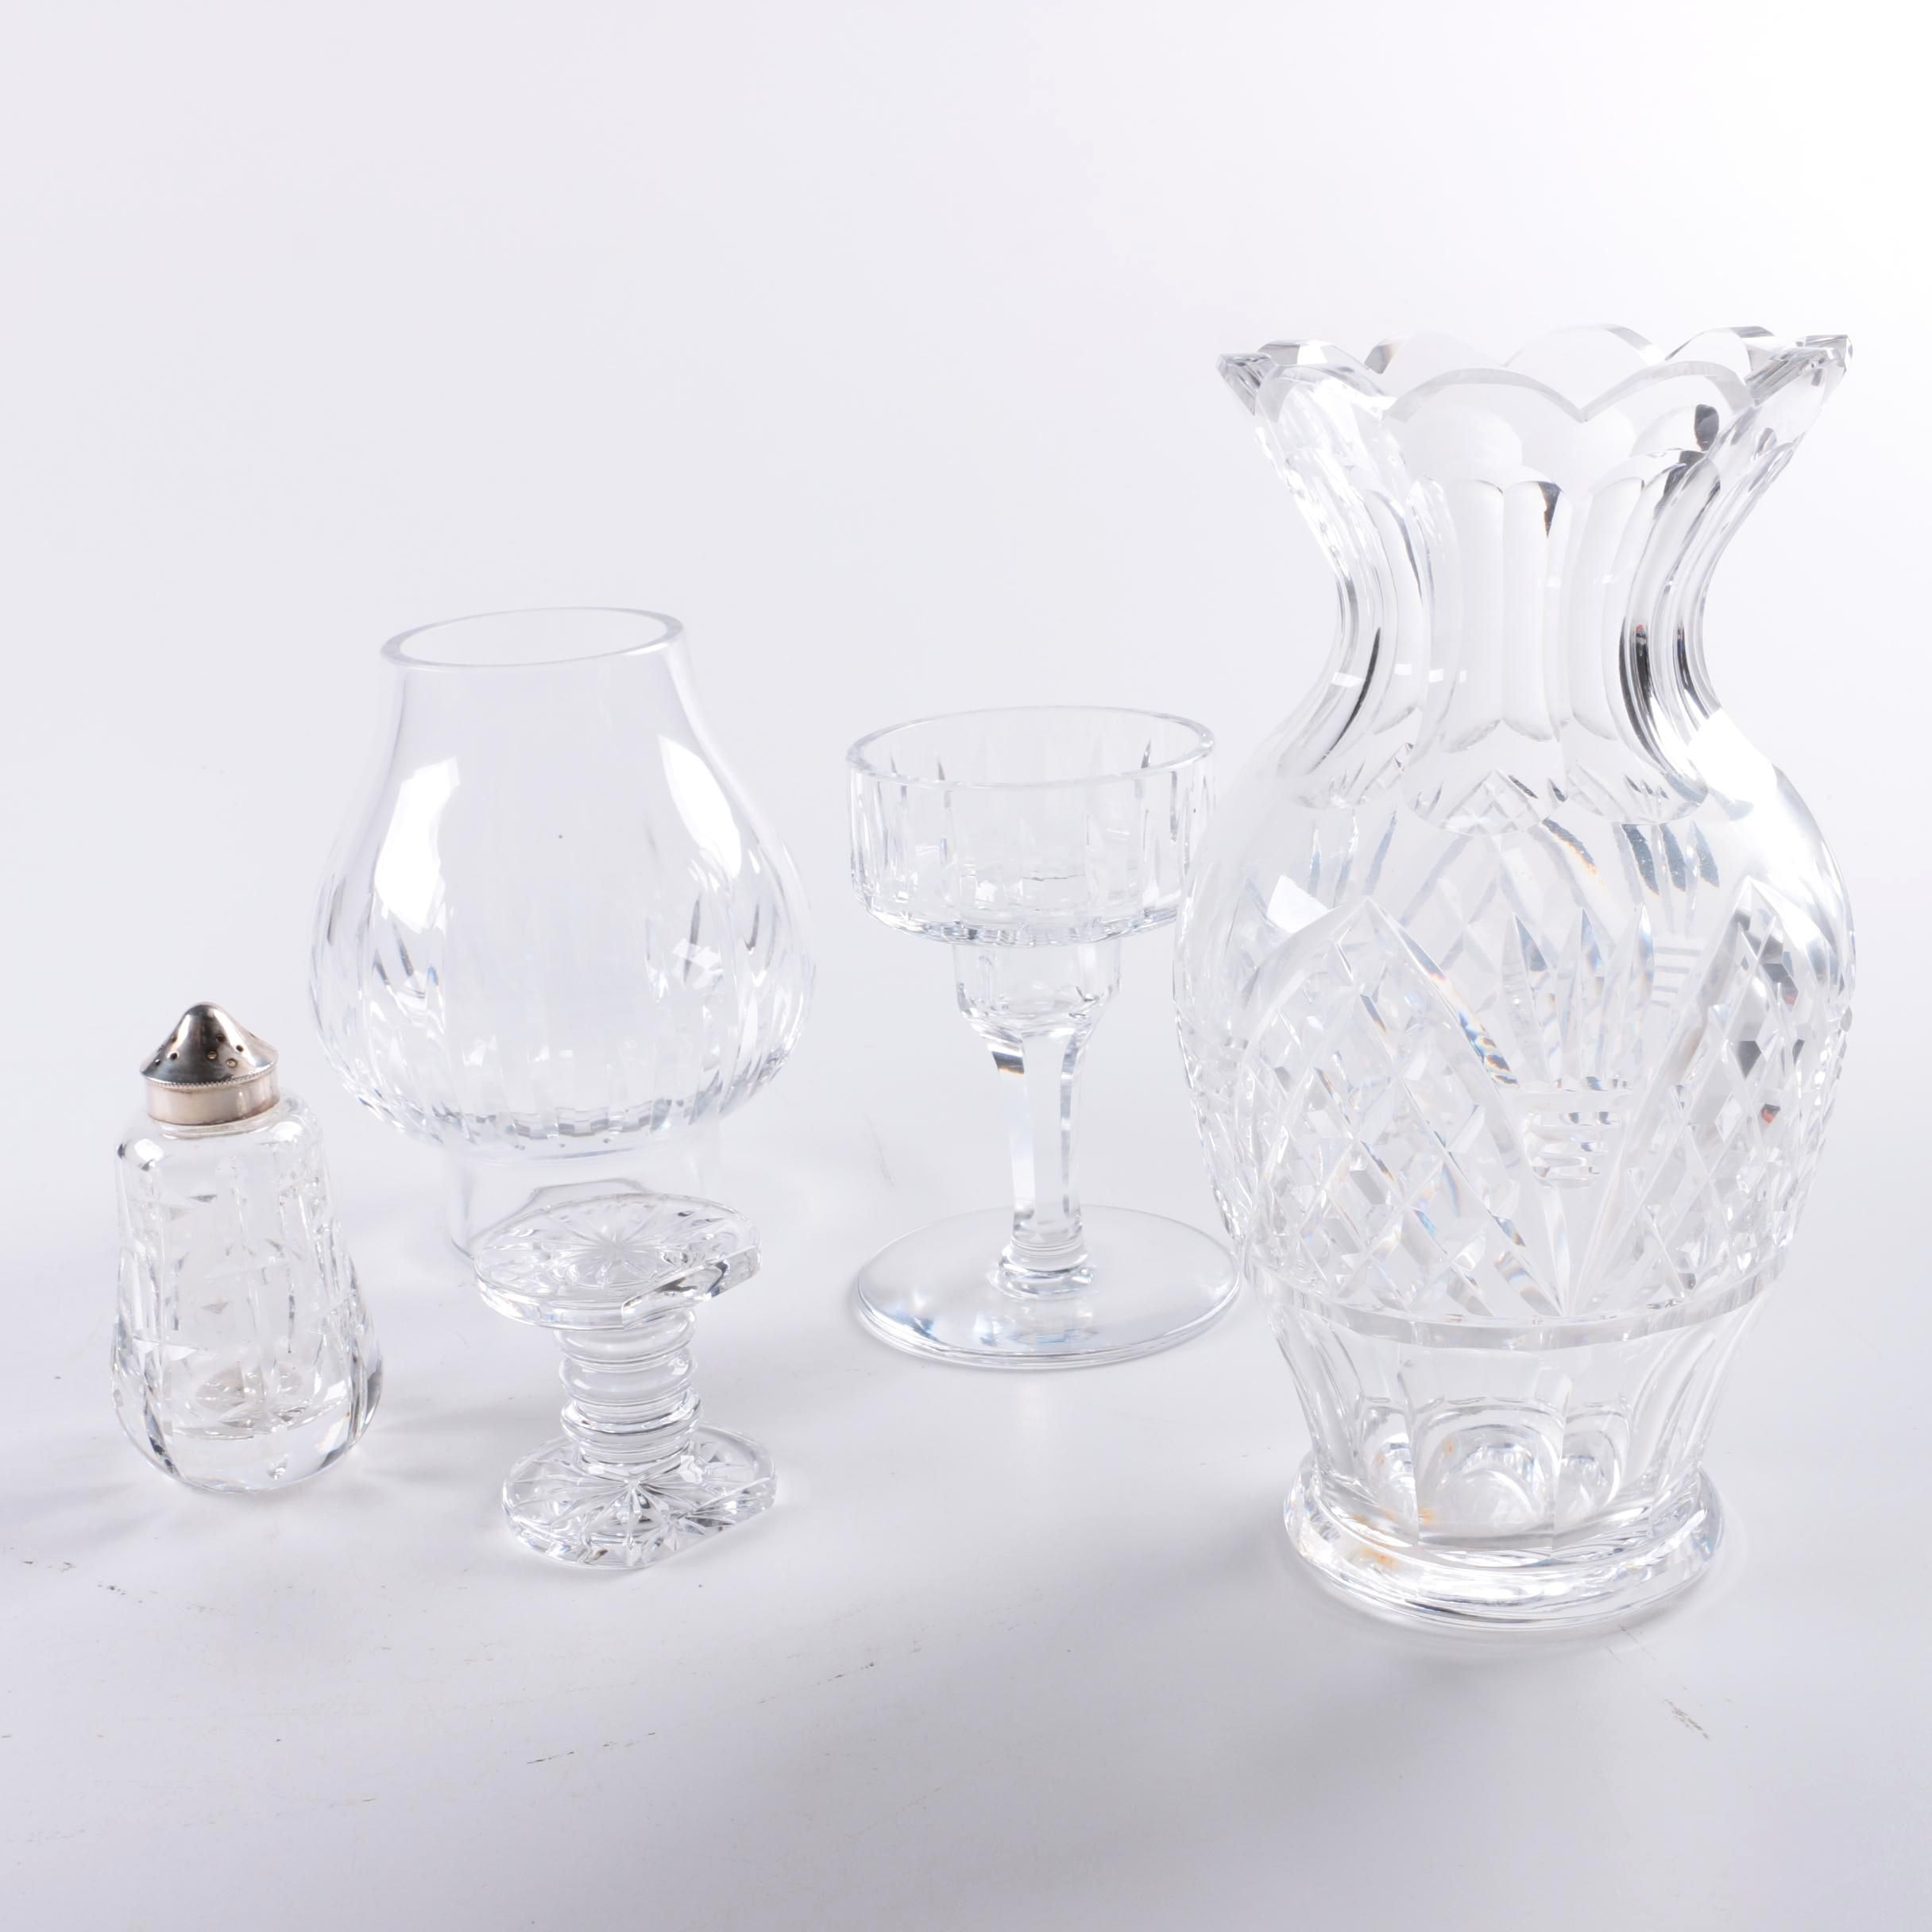 Assortment of Crystal Giftware Décor Including Waterford